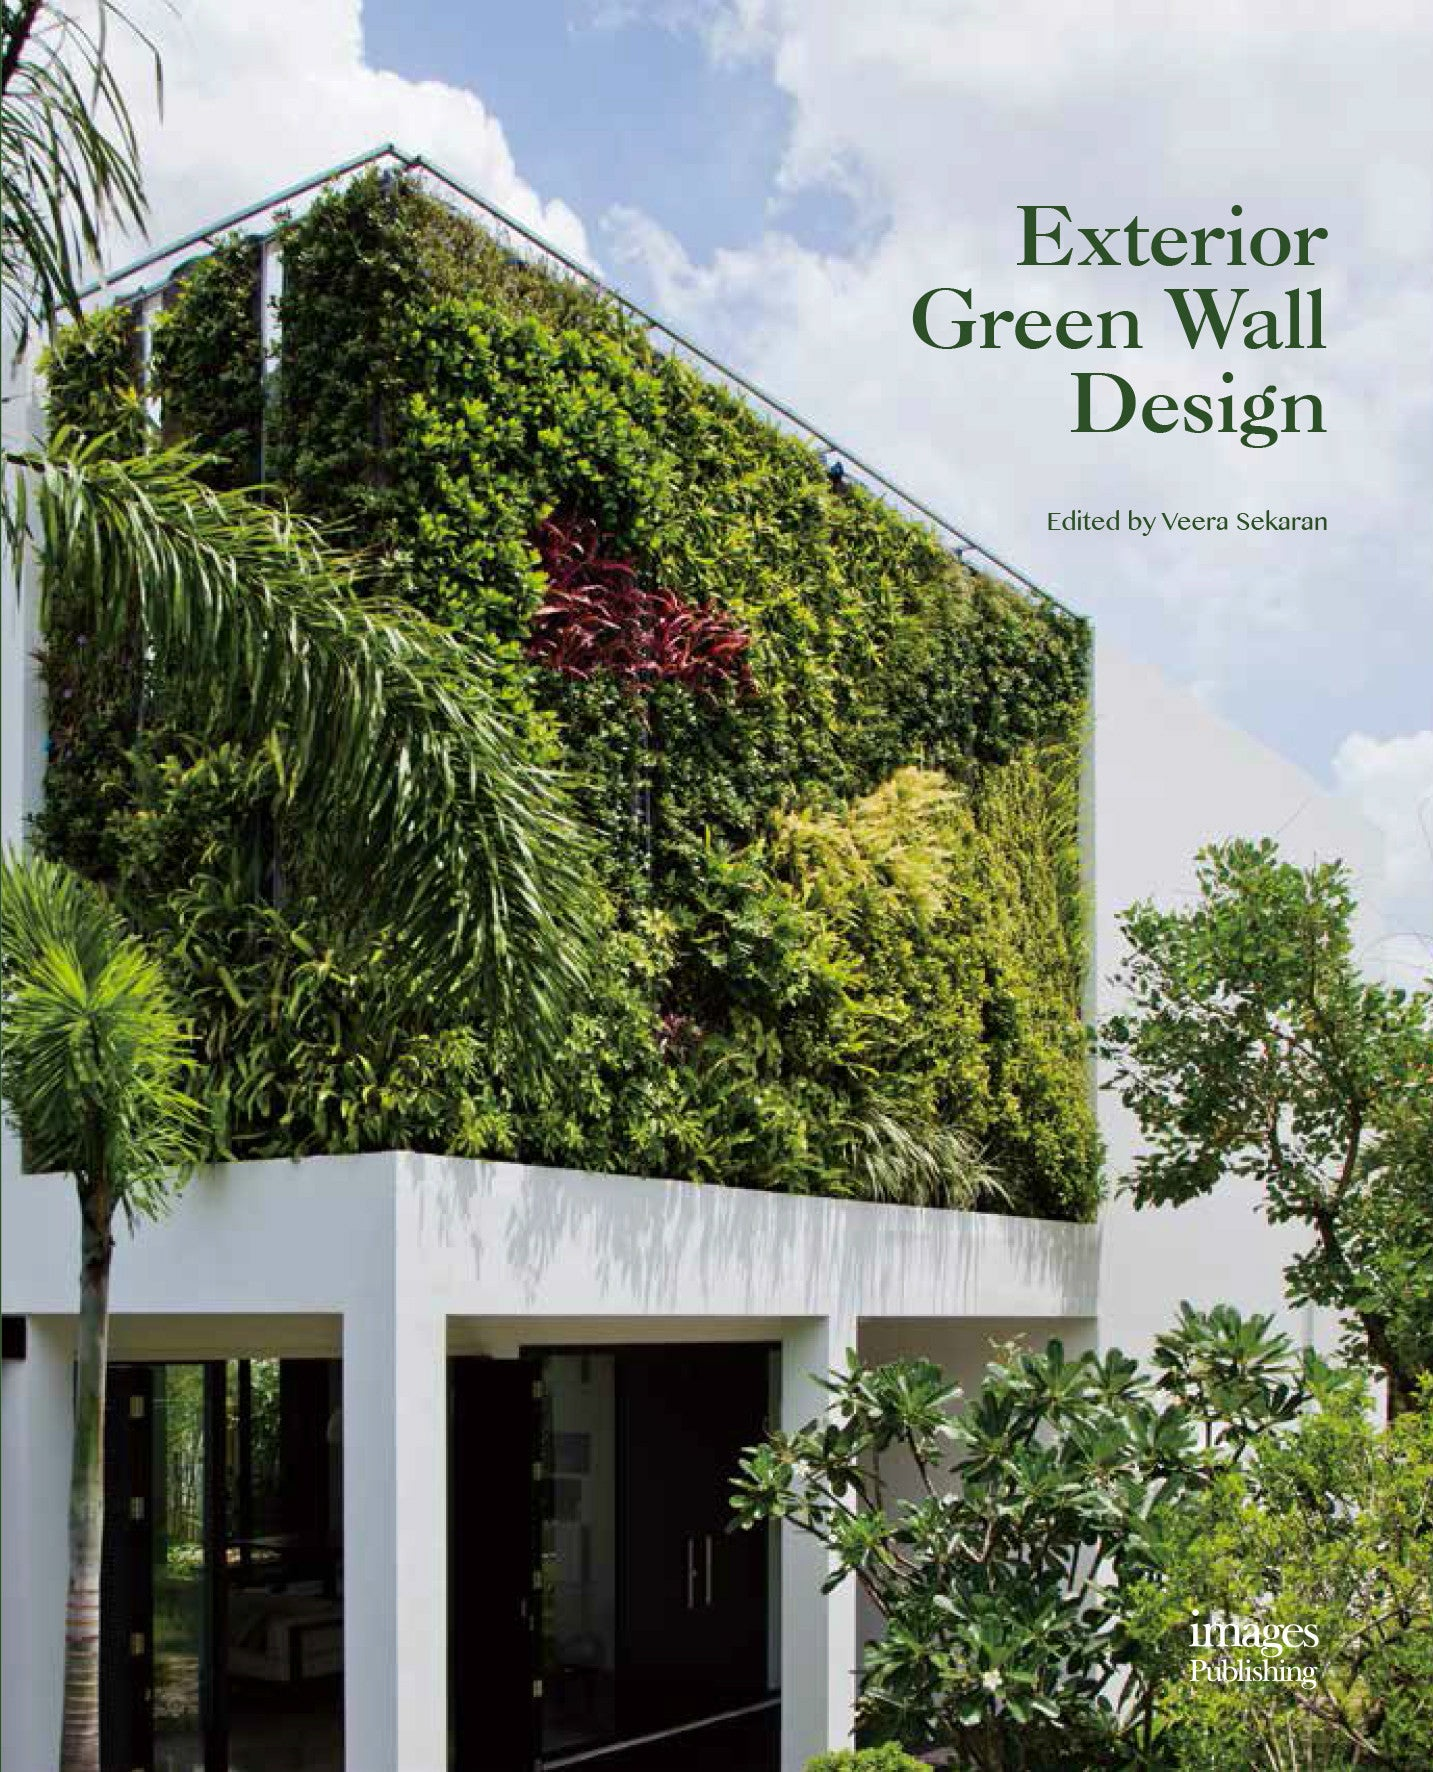 Exterior Green Wall Design